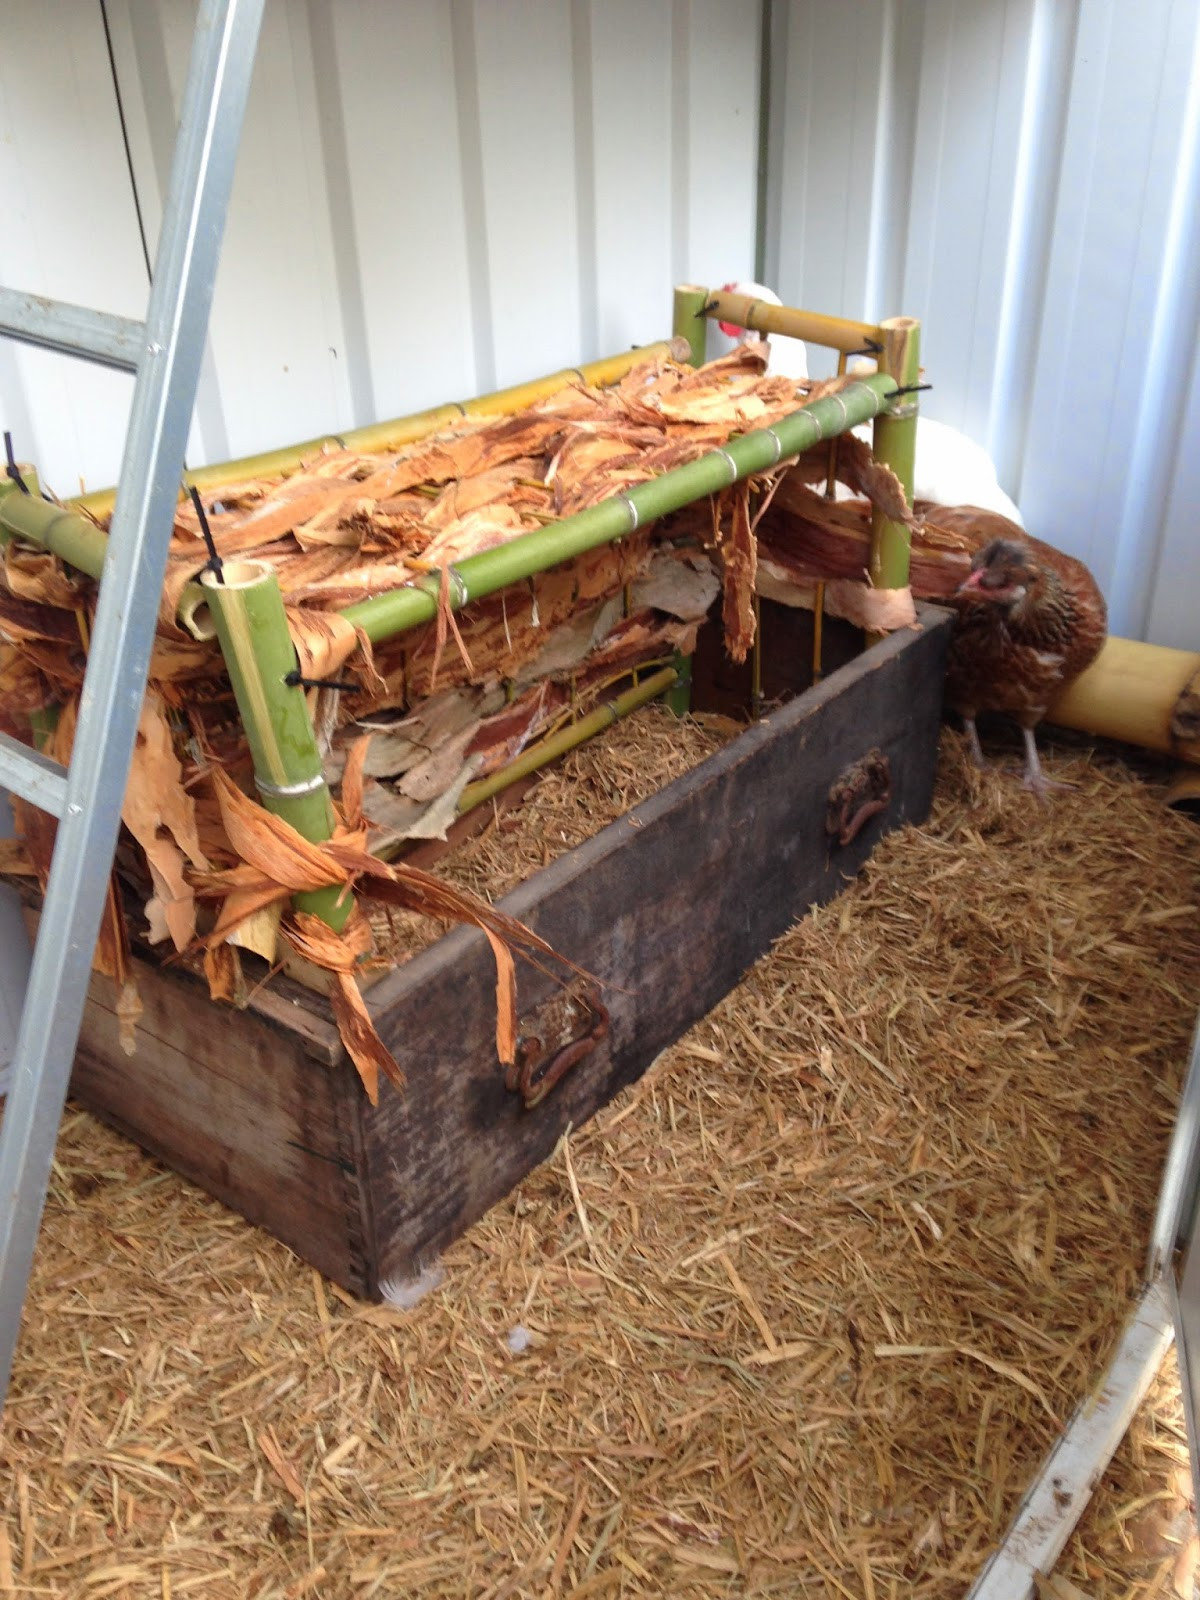 Best ideas about DIY Chicken Nest Boxes . Save or Pin This Small Town Life Backyard DIY Part 3 Chicken Nesting Box Now.